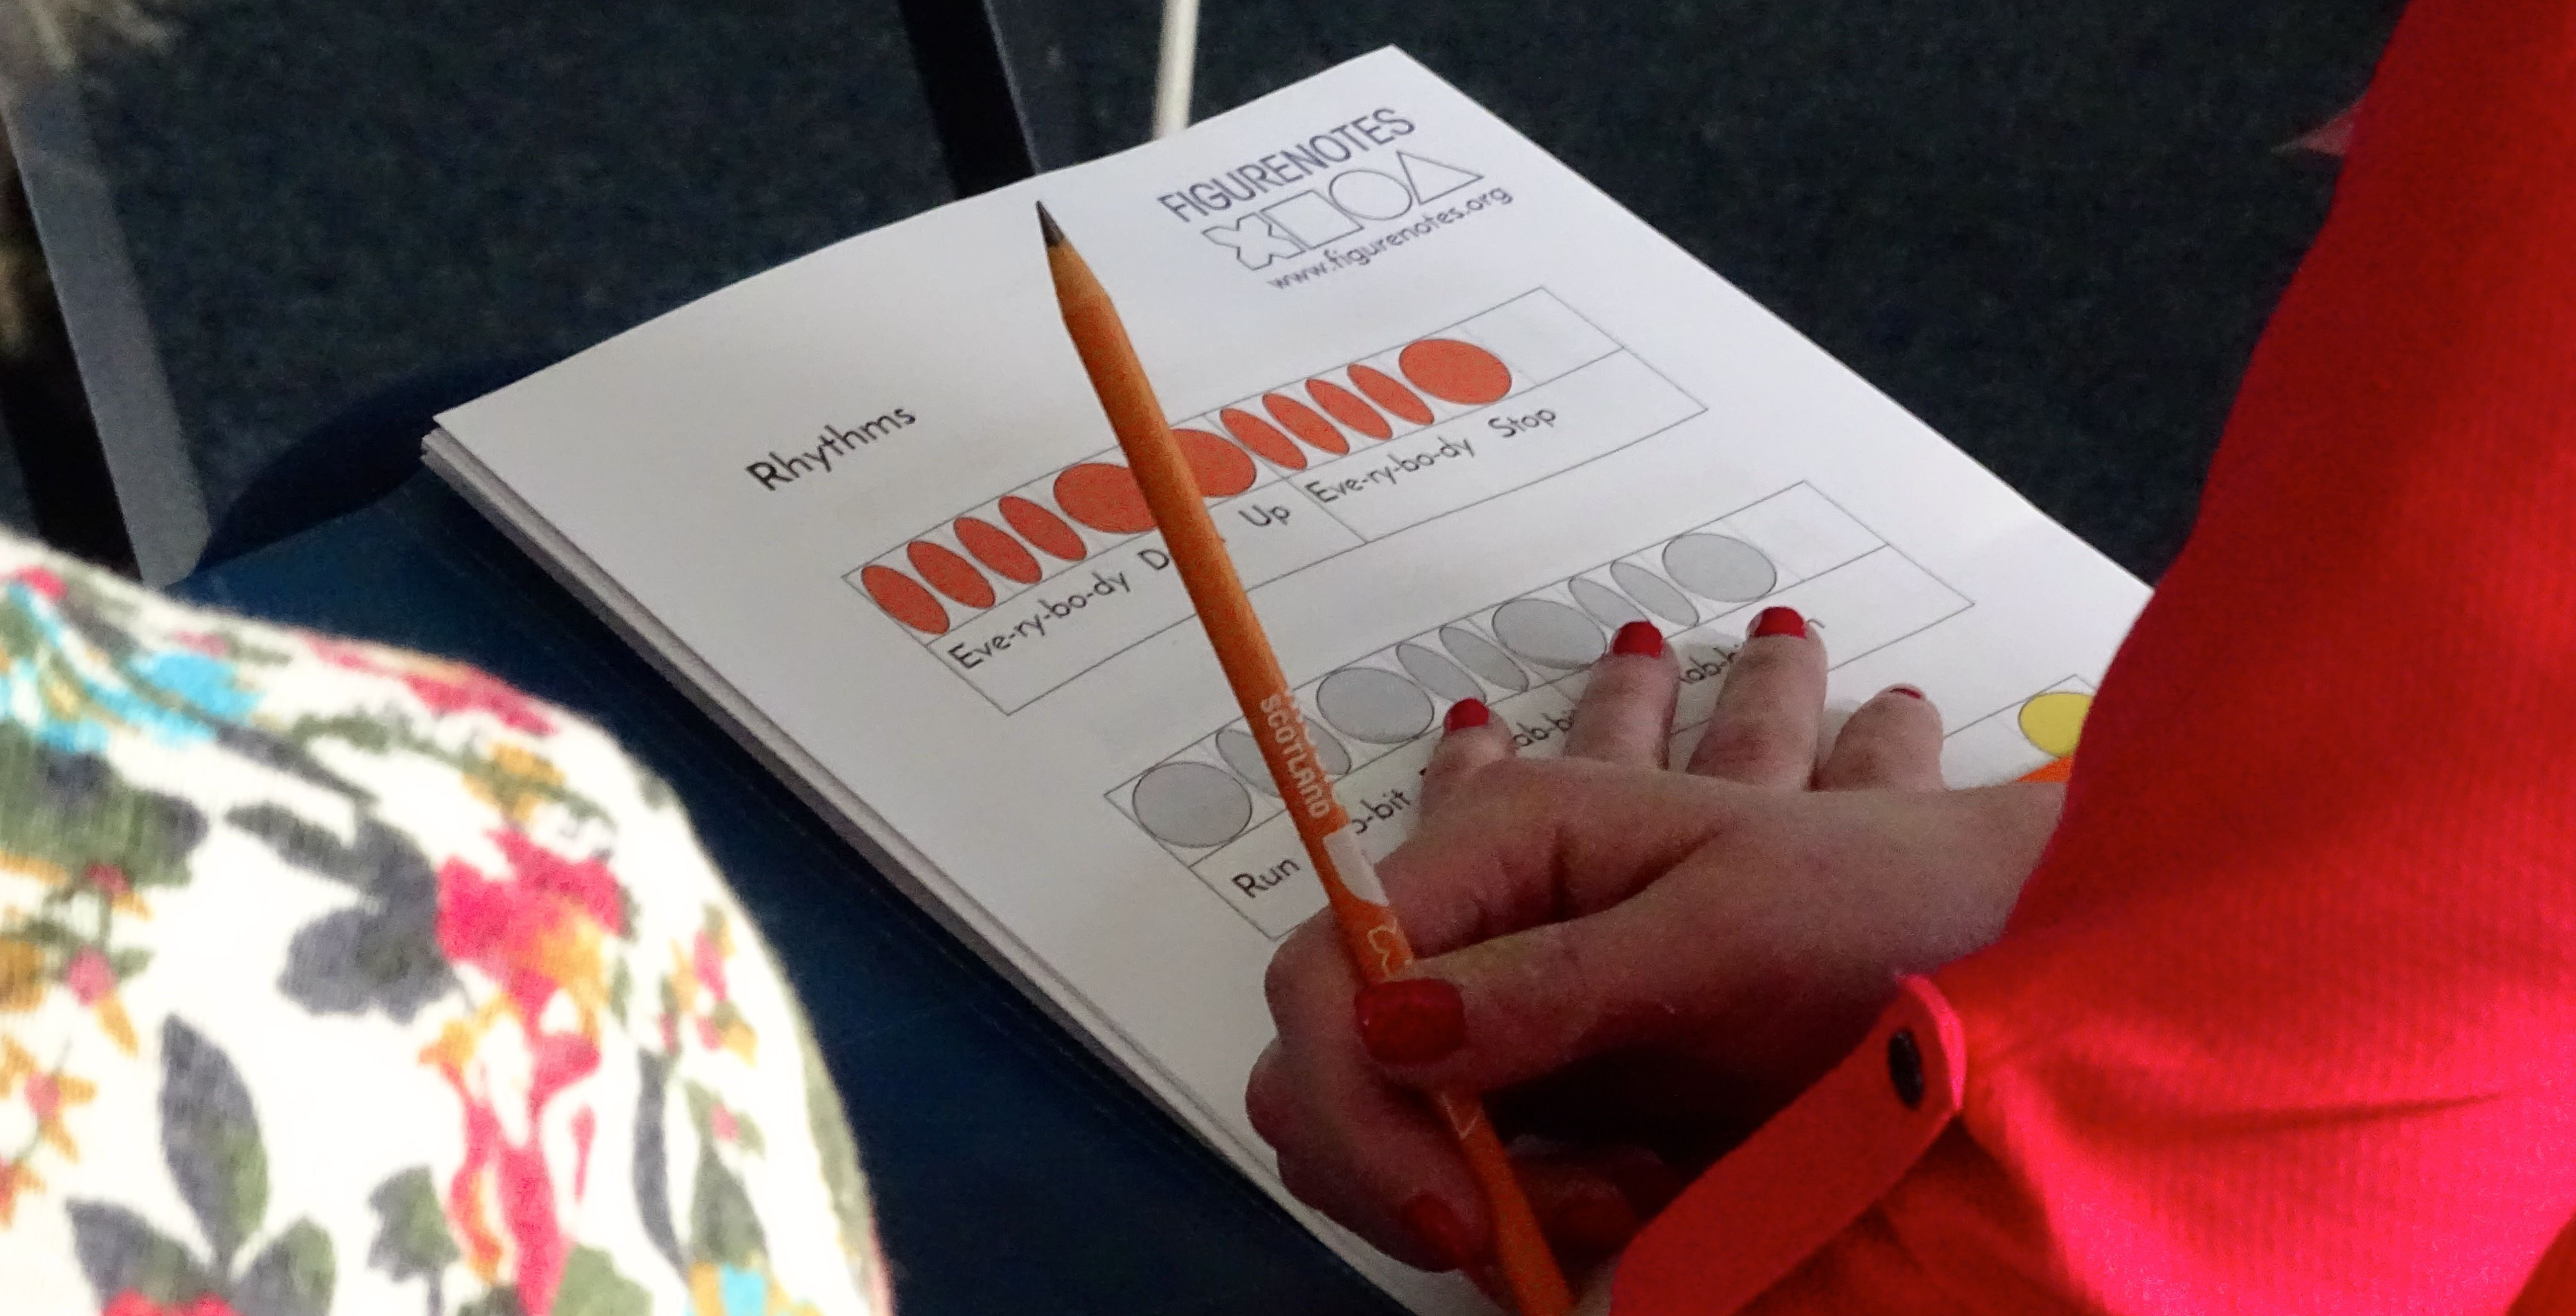 Paper resource with Figurenotes rhythms with a hand placed on top